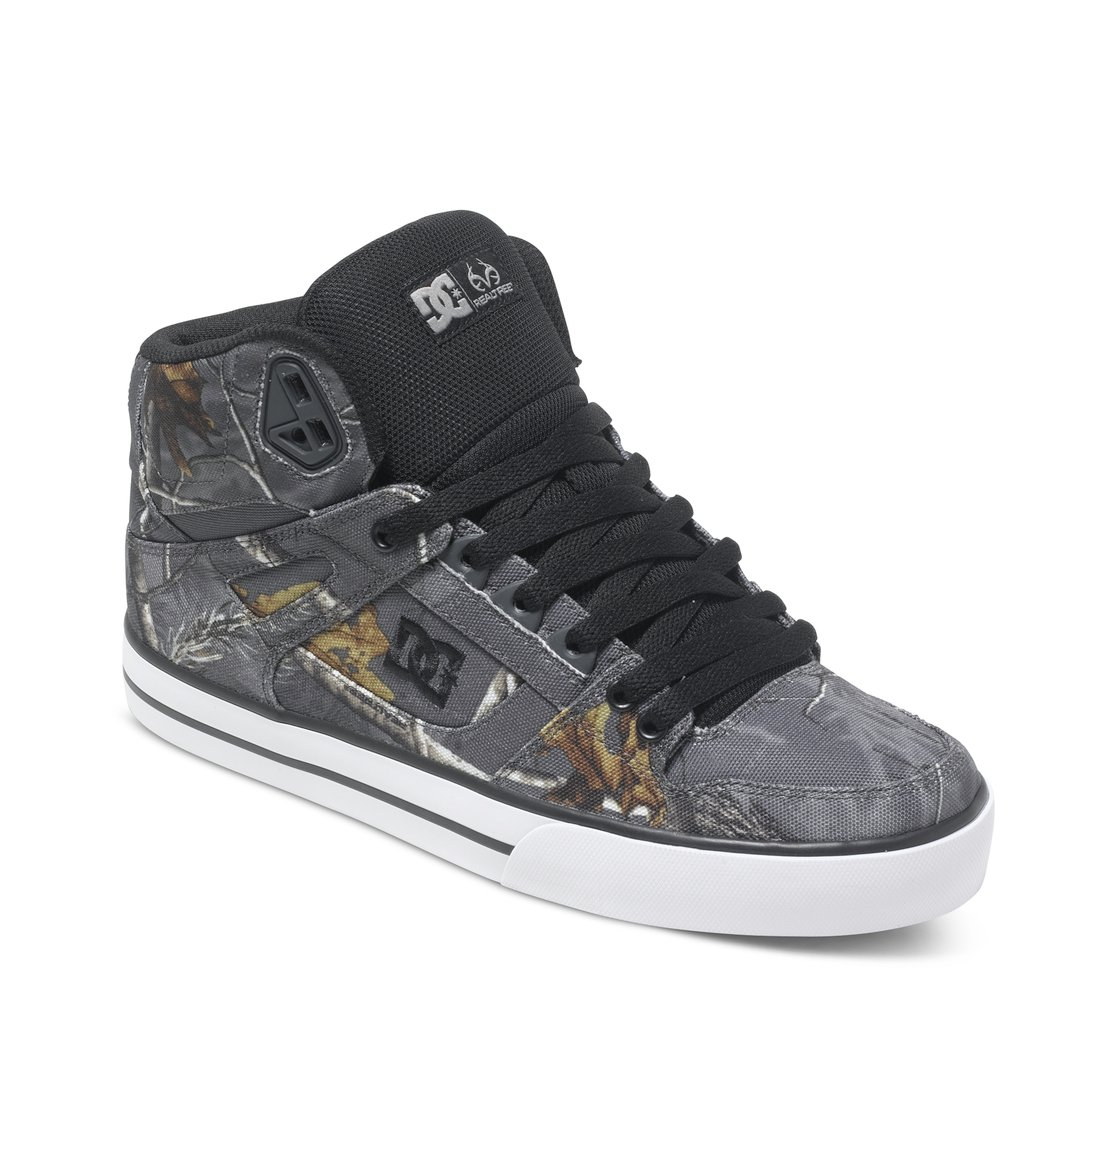 dc shoes Pure SE - Scarpe alte da Uomo - White - DC Shoes zUeYZwBP5J